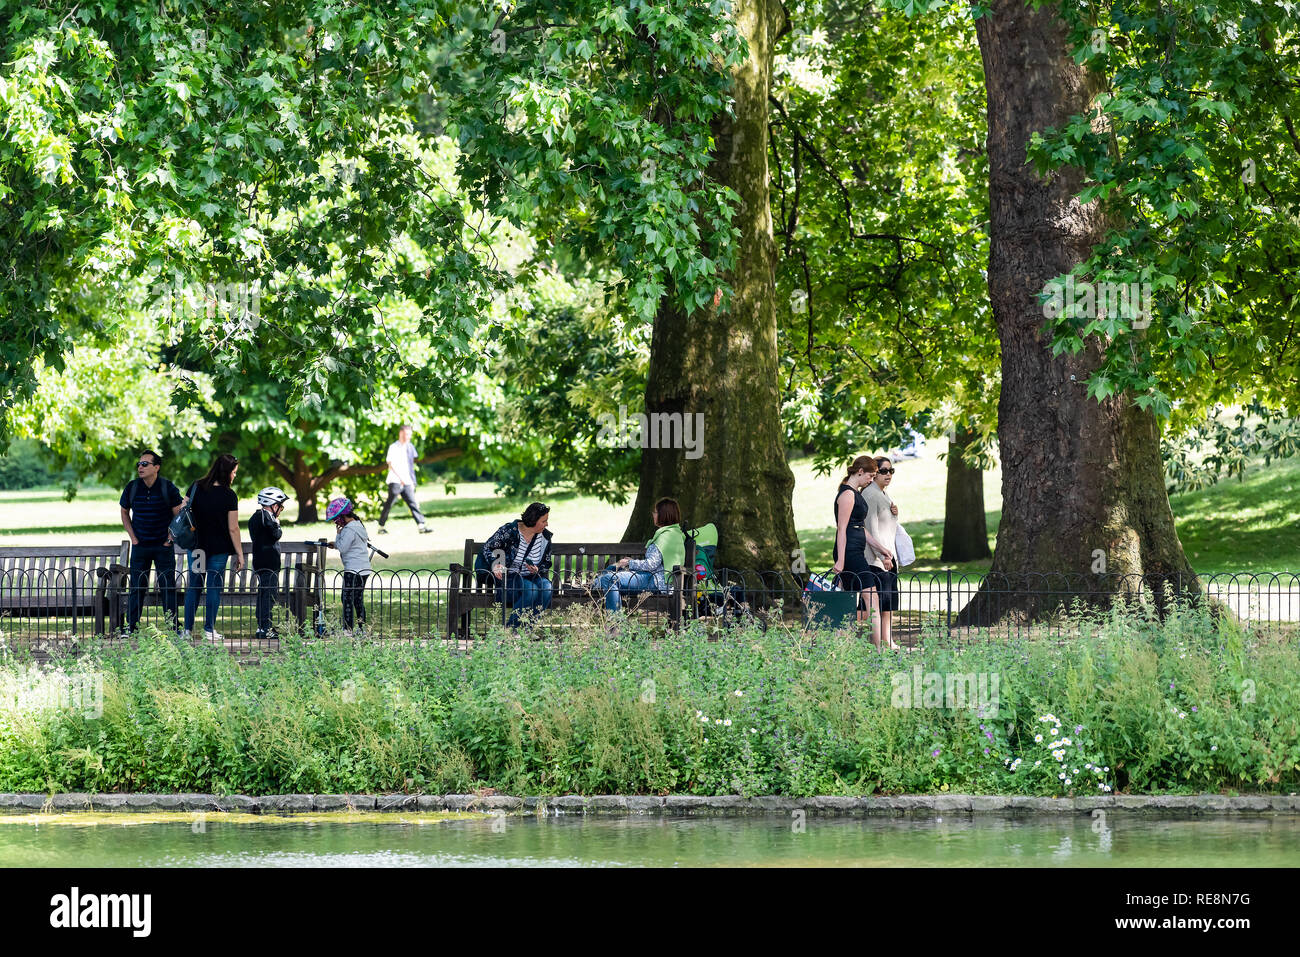 London, UK - June 21, 2018: St James Park green trees in sunny summer with many people walking on sidewalk by pond river water and sitting on benches Stock Photo